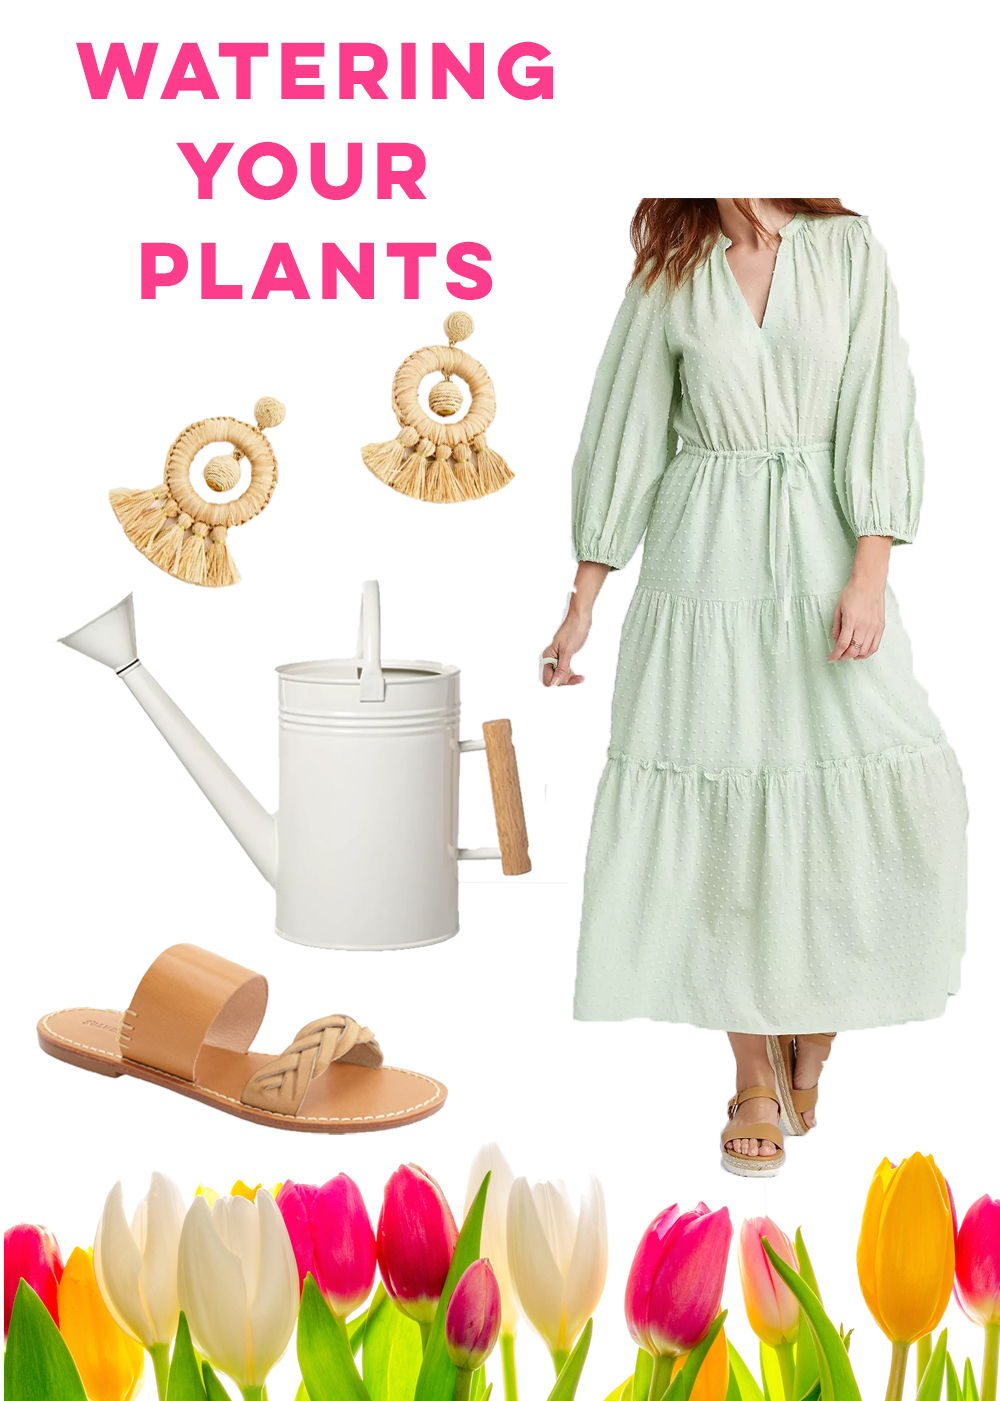 What to Wear While At Home / What to Wear During a Movie Night / Women Matching Pajama Set / What to Wear Watering Plants / What to Wear For A Bike Ride / Long SLeeve Maxi Dress - Sunshine Style, A Florida Based Fashion and Lifestyle Blog